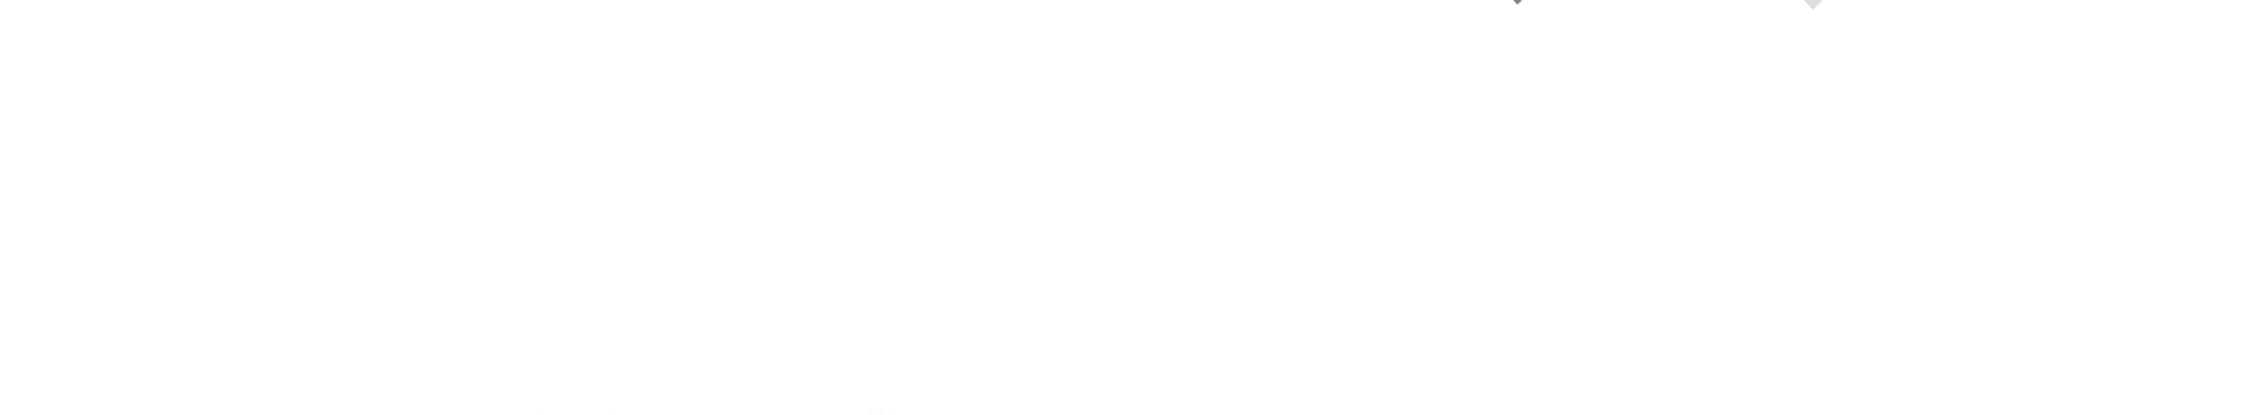 David Lindsay Music  |   Nightbound